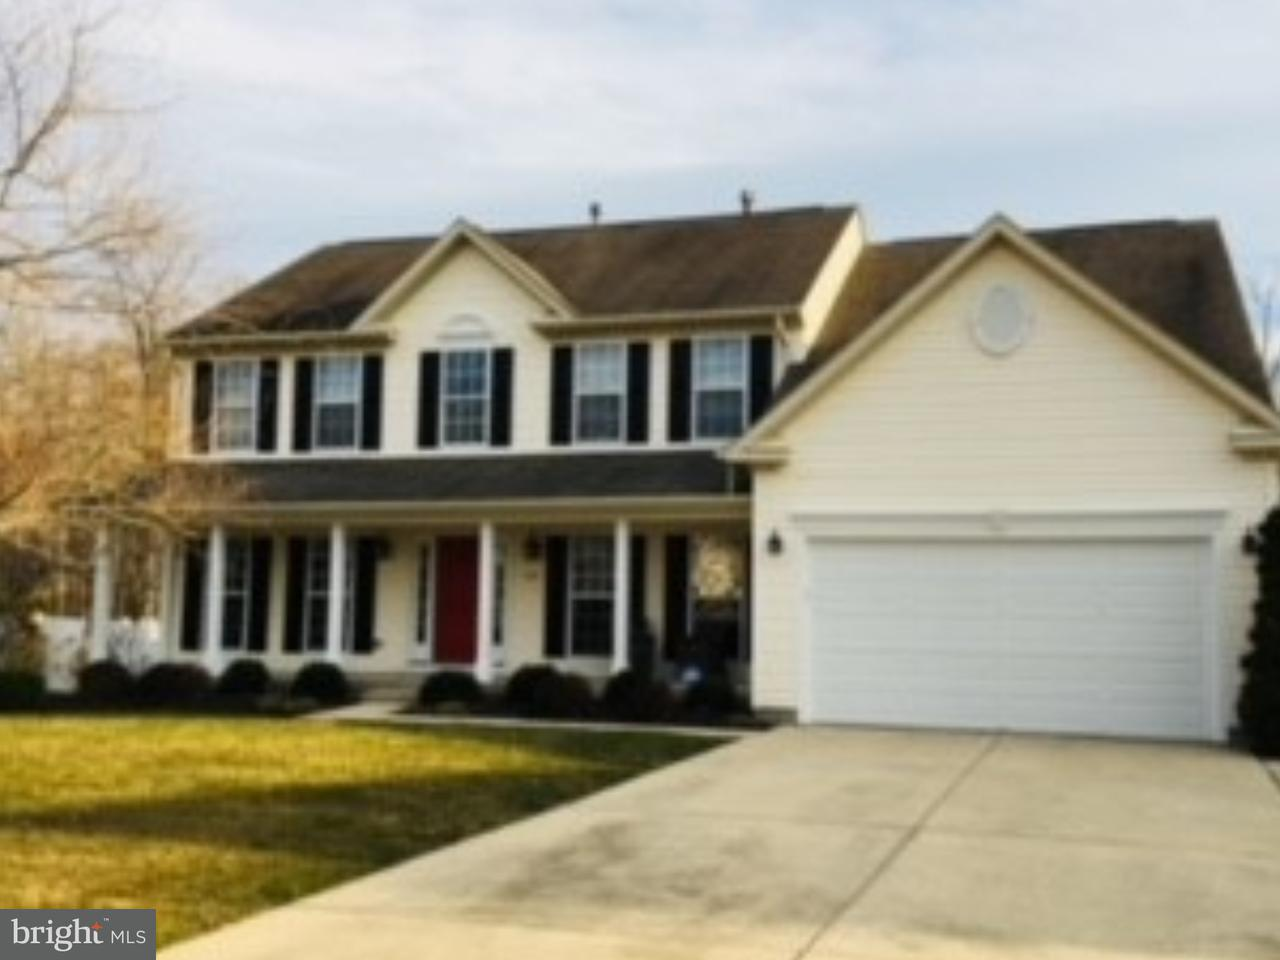 Single Family Home for Sale at 28 JAMES Drive Waretown, New Jersey 08758 United States